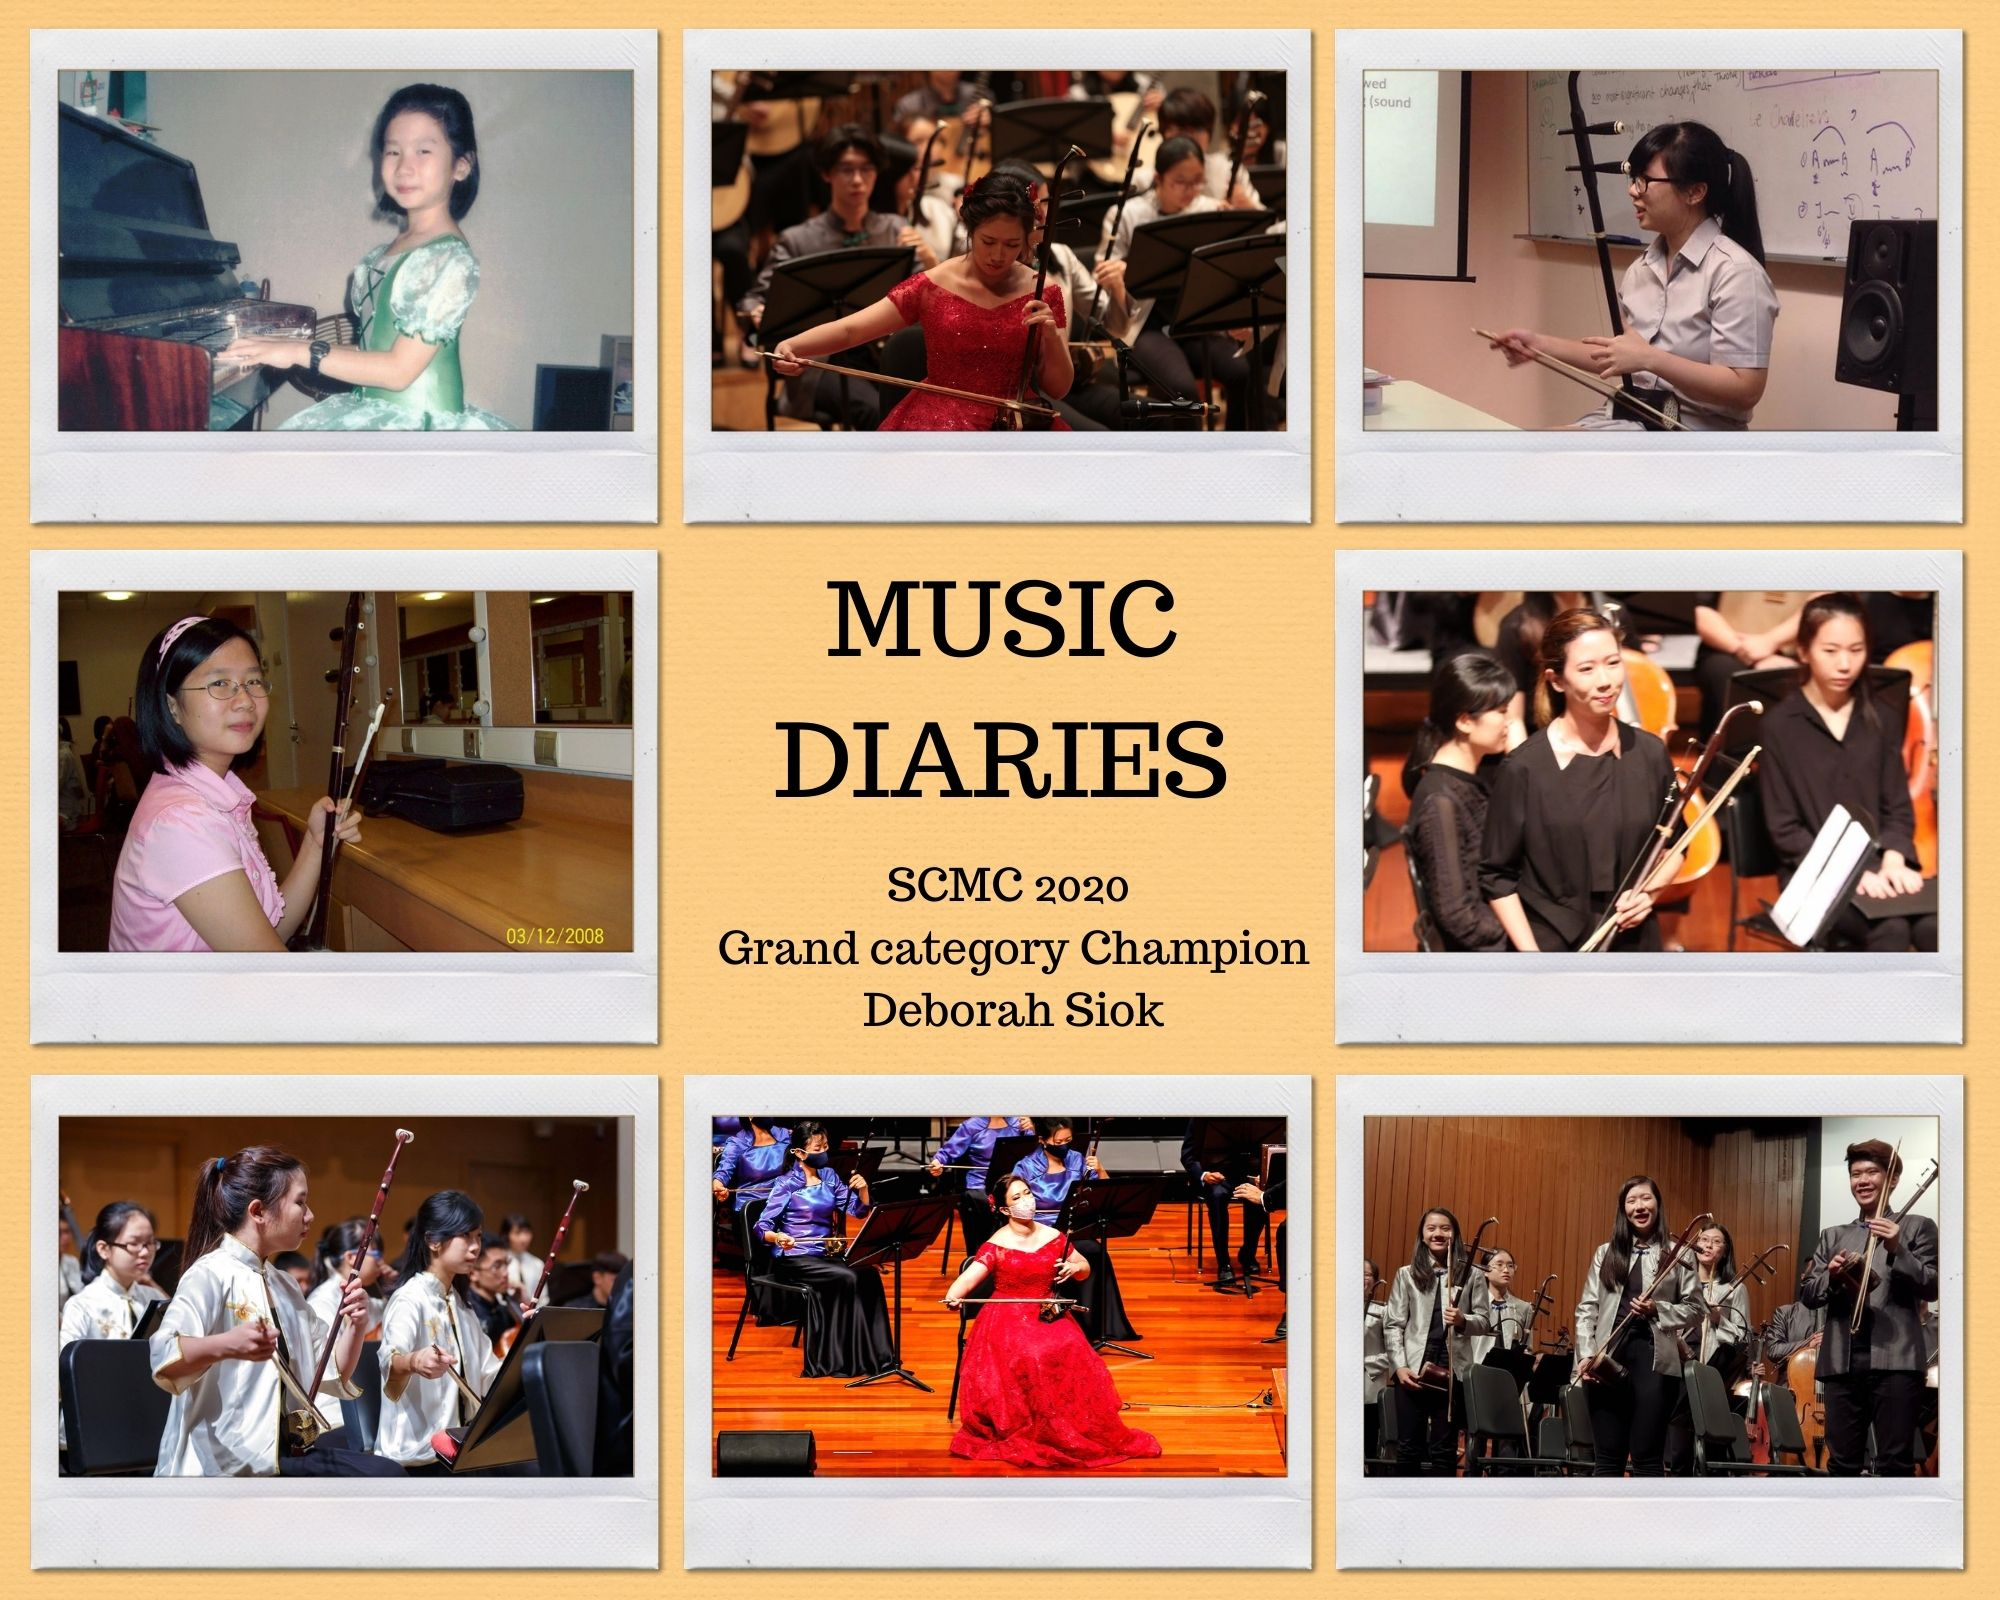 Music Diaries - Reflections of First Grand Champion in SCMC 2020